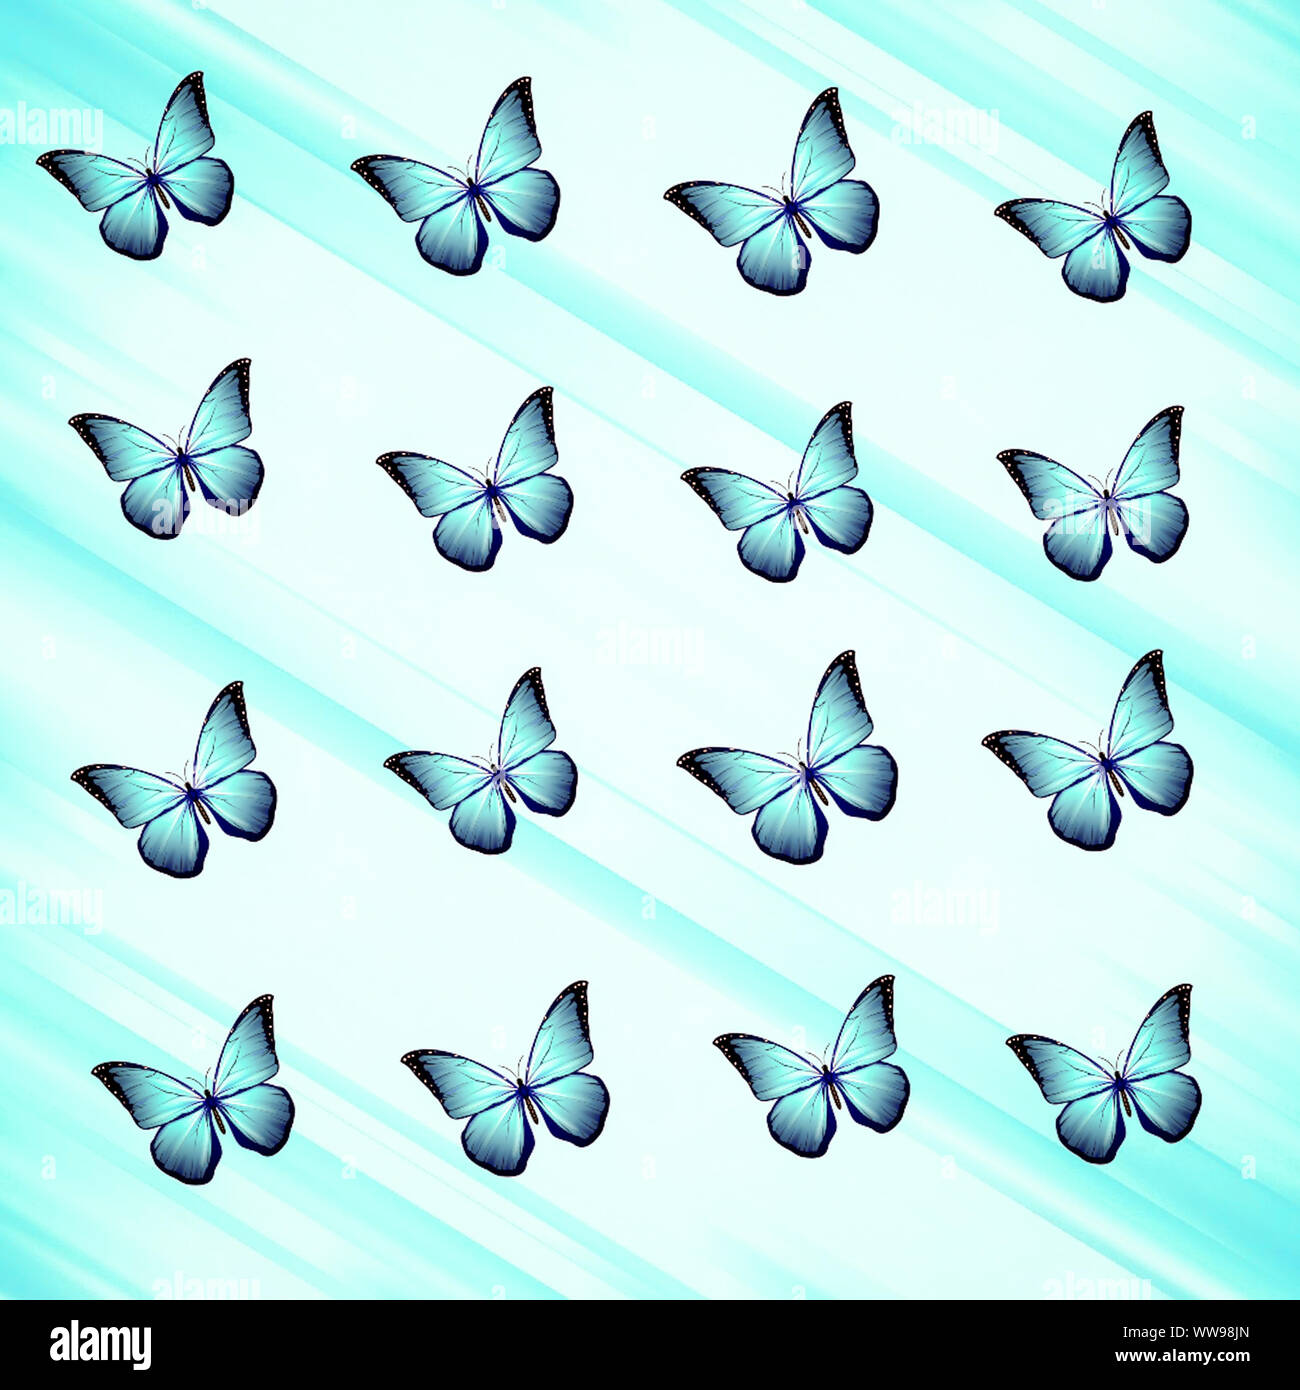 Beautiful Blue Butterfly Patternbest As Wallpapercover And